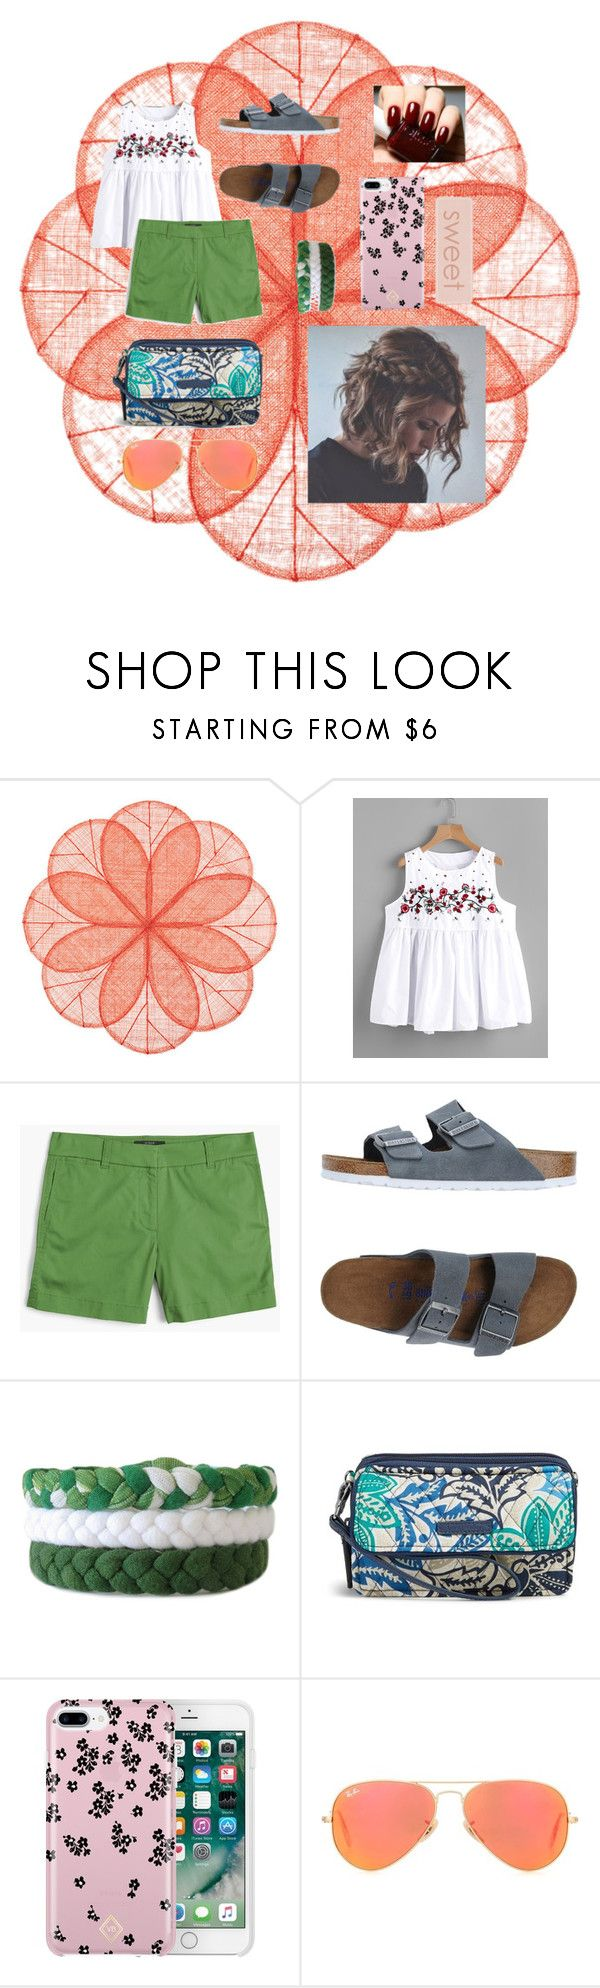 """Untitled #72"" by darksundown ❤ liked on Polyvore featuring Deborah Rhodes, J.Crew, Birkenstock, Vera Bradley and Ray-Ban"